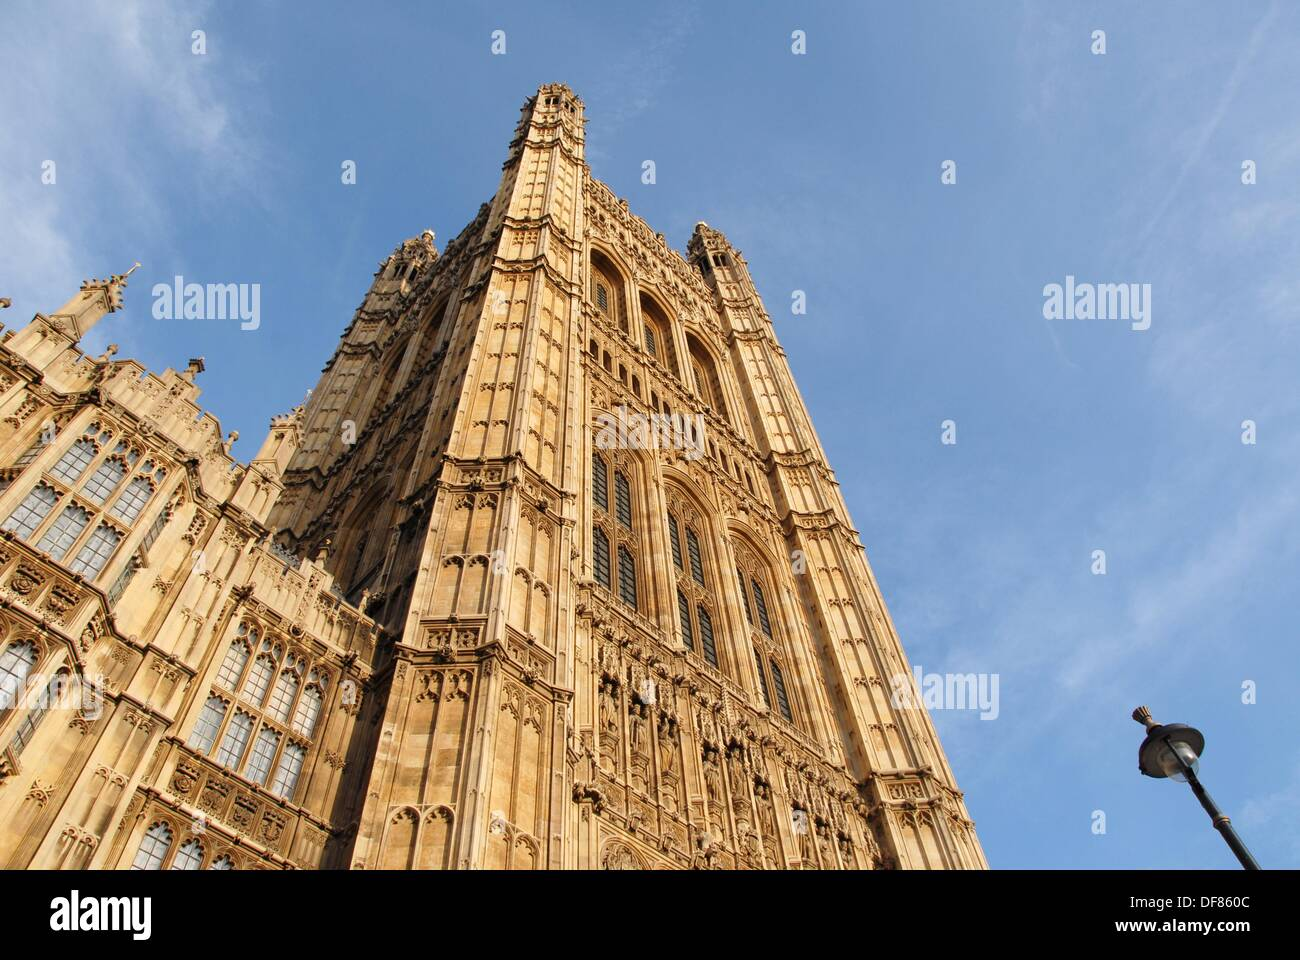 Victoria Tower. Houses of Parliament. Westminster Hall. Westminster, London, England, Great Britain, Europe. - Stock Image